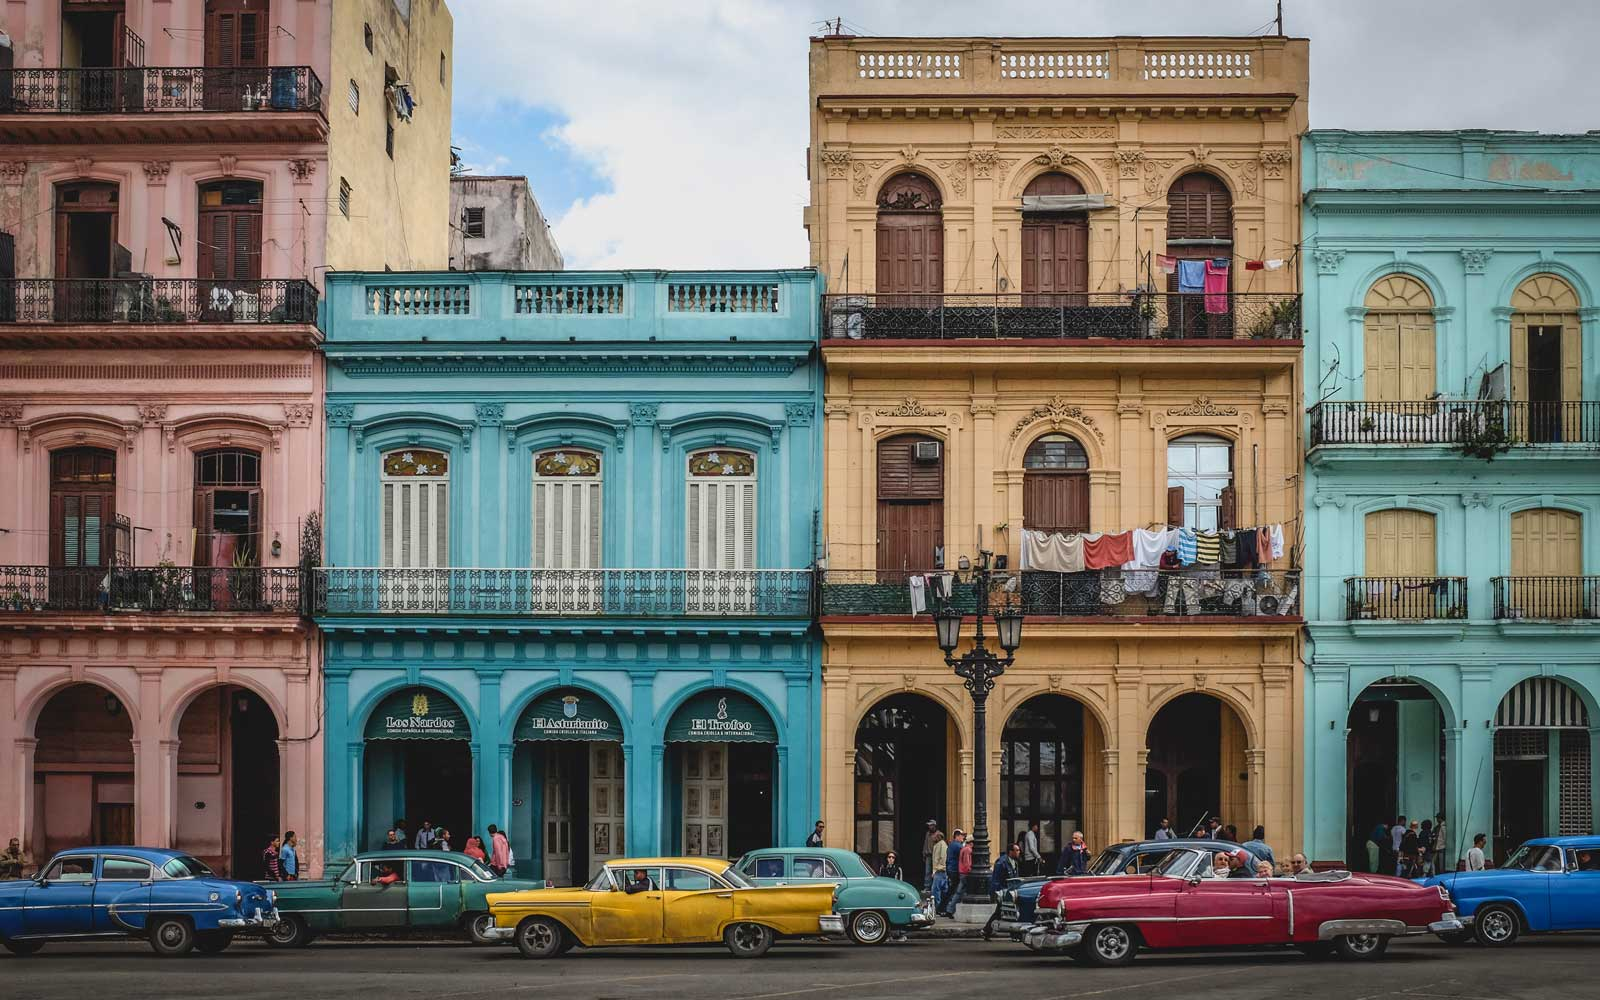 A photo of colonial buildings in old Havana, Cuba